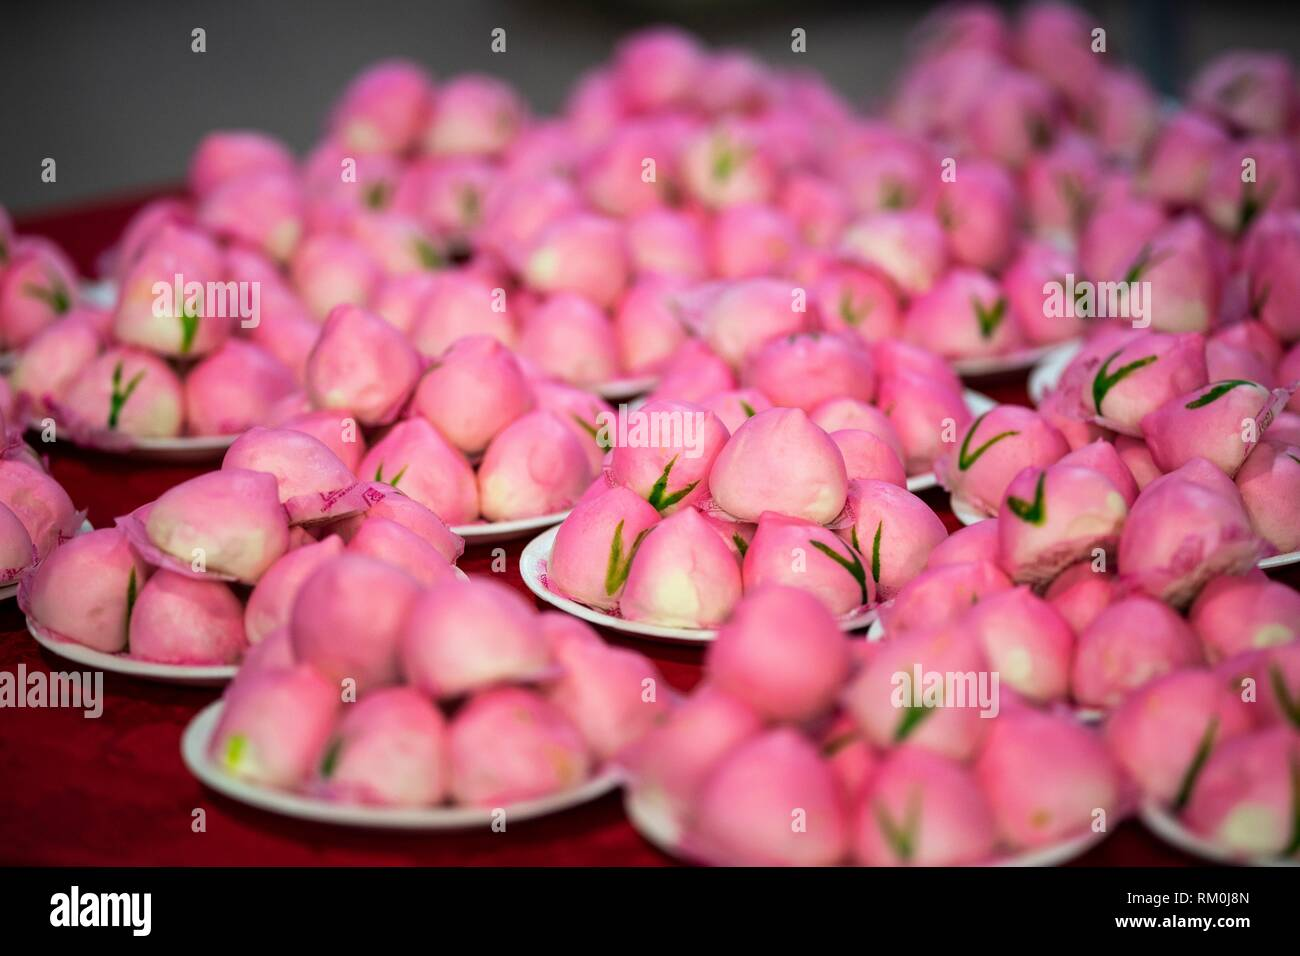 Steamed Longevity buns were served during the Sarawak Chai´s Clan Women Section 20th anniversary celebration in Kuching, Malaysia - Stock Image